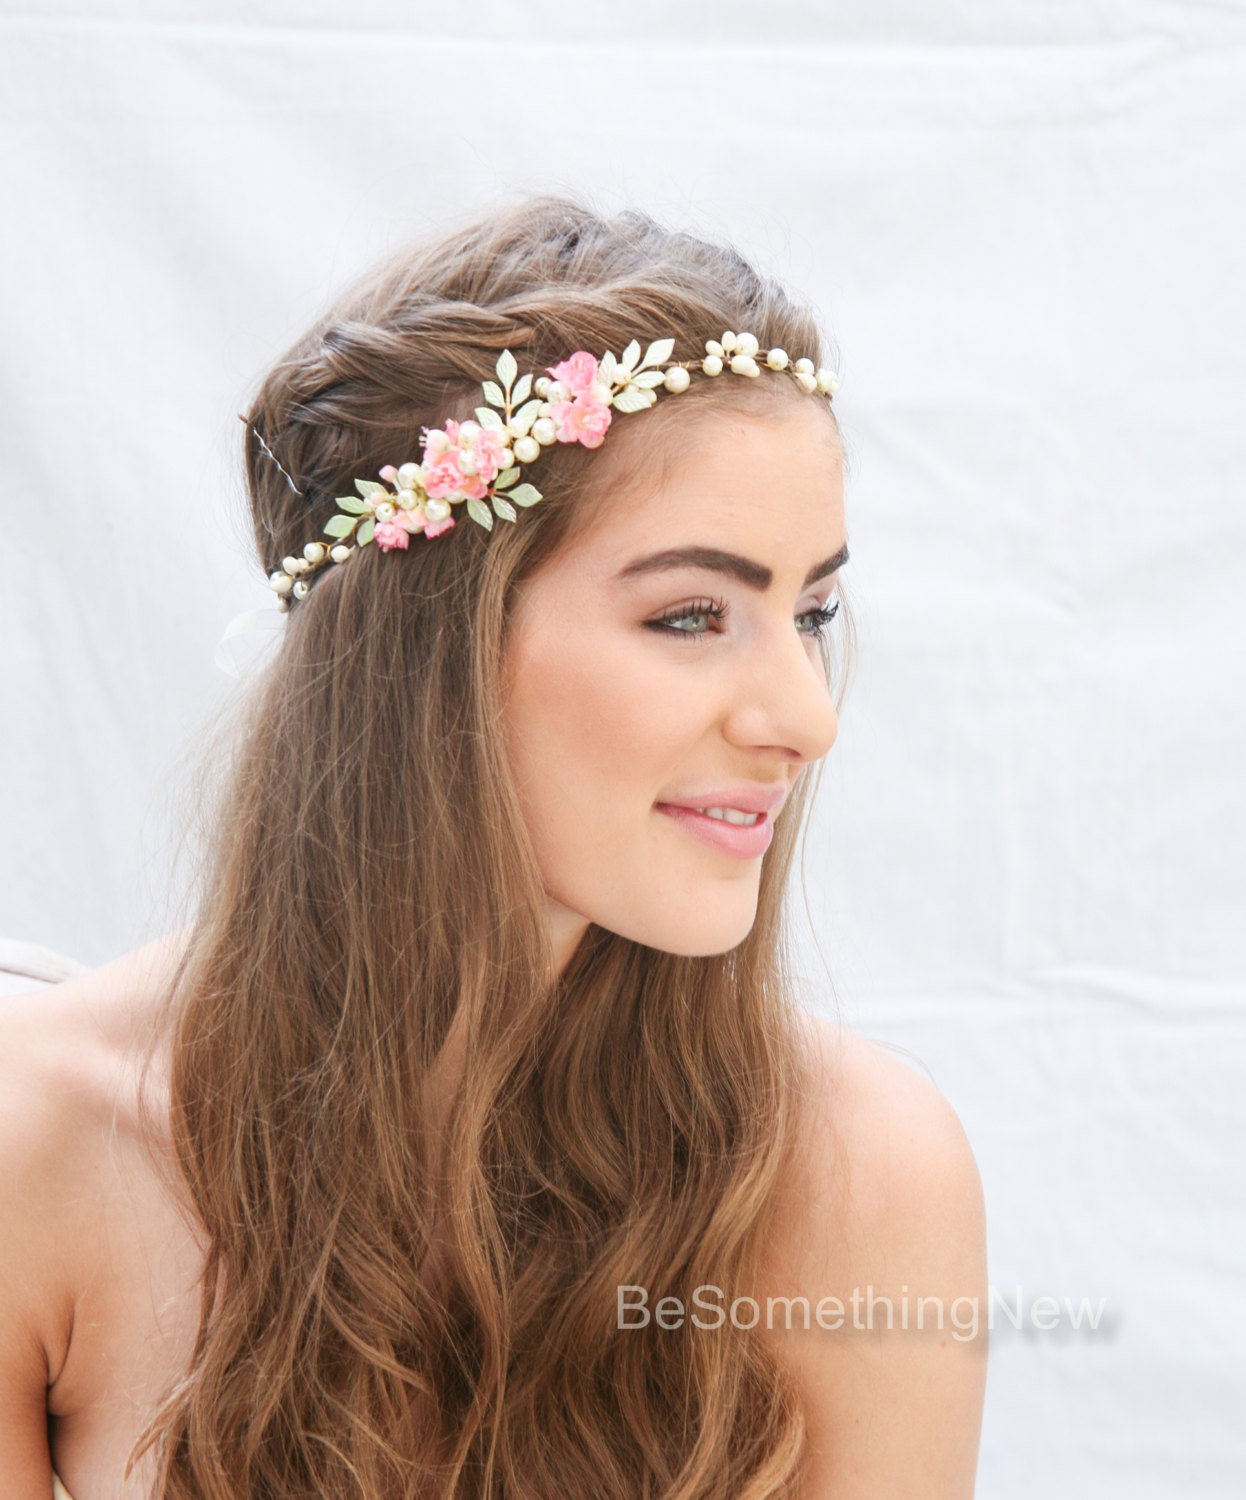 Wedding Hairstyles Boho: Flower Crown With Hand Painted Leaves And Pink Flowers